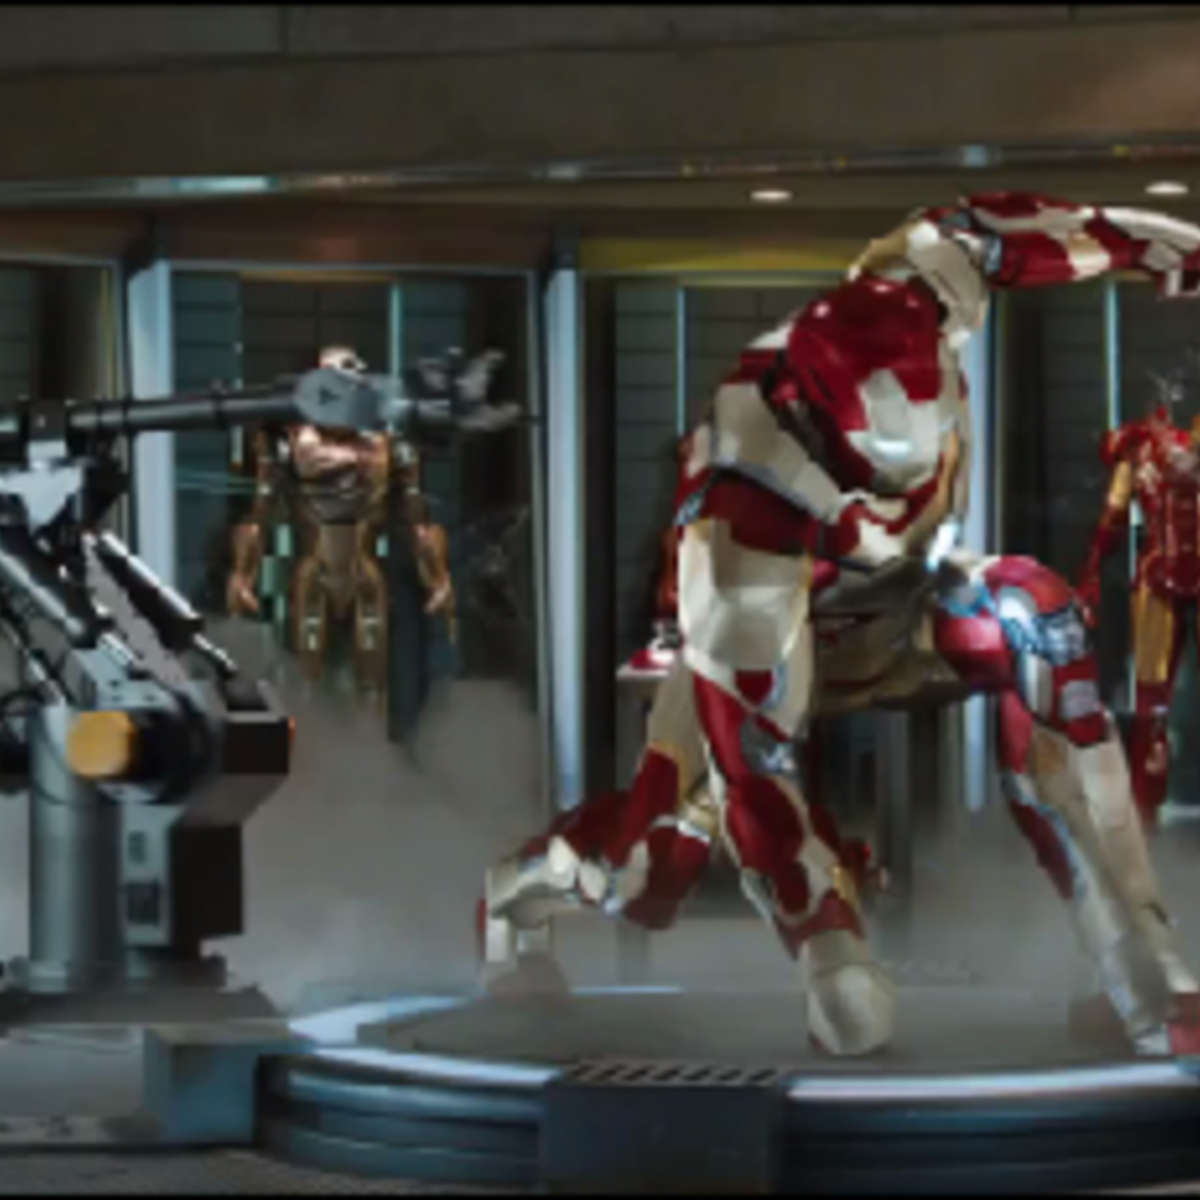 ironman3trailerpeek_0.jpg